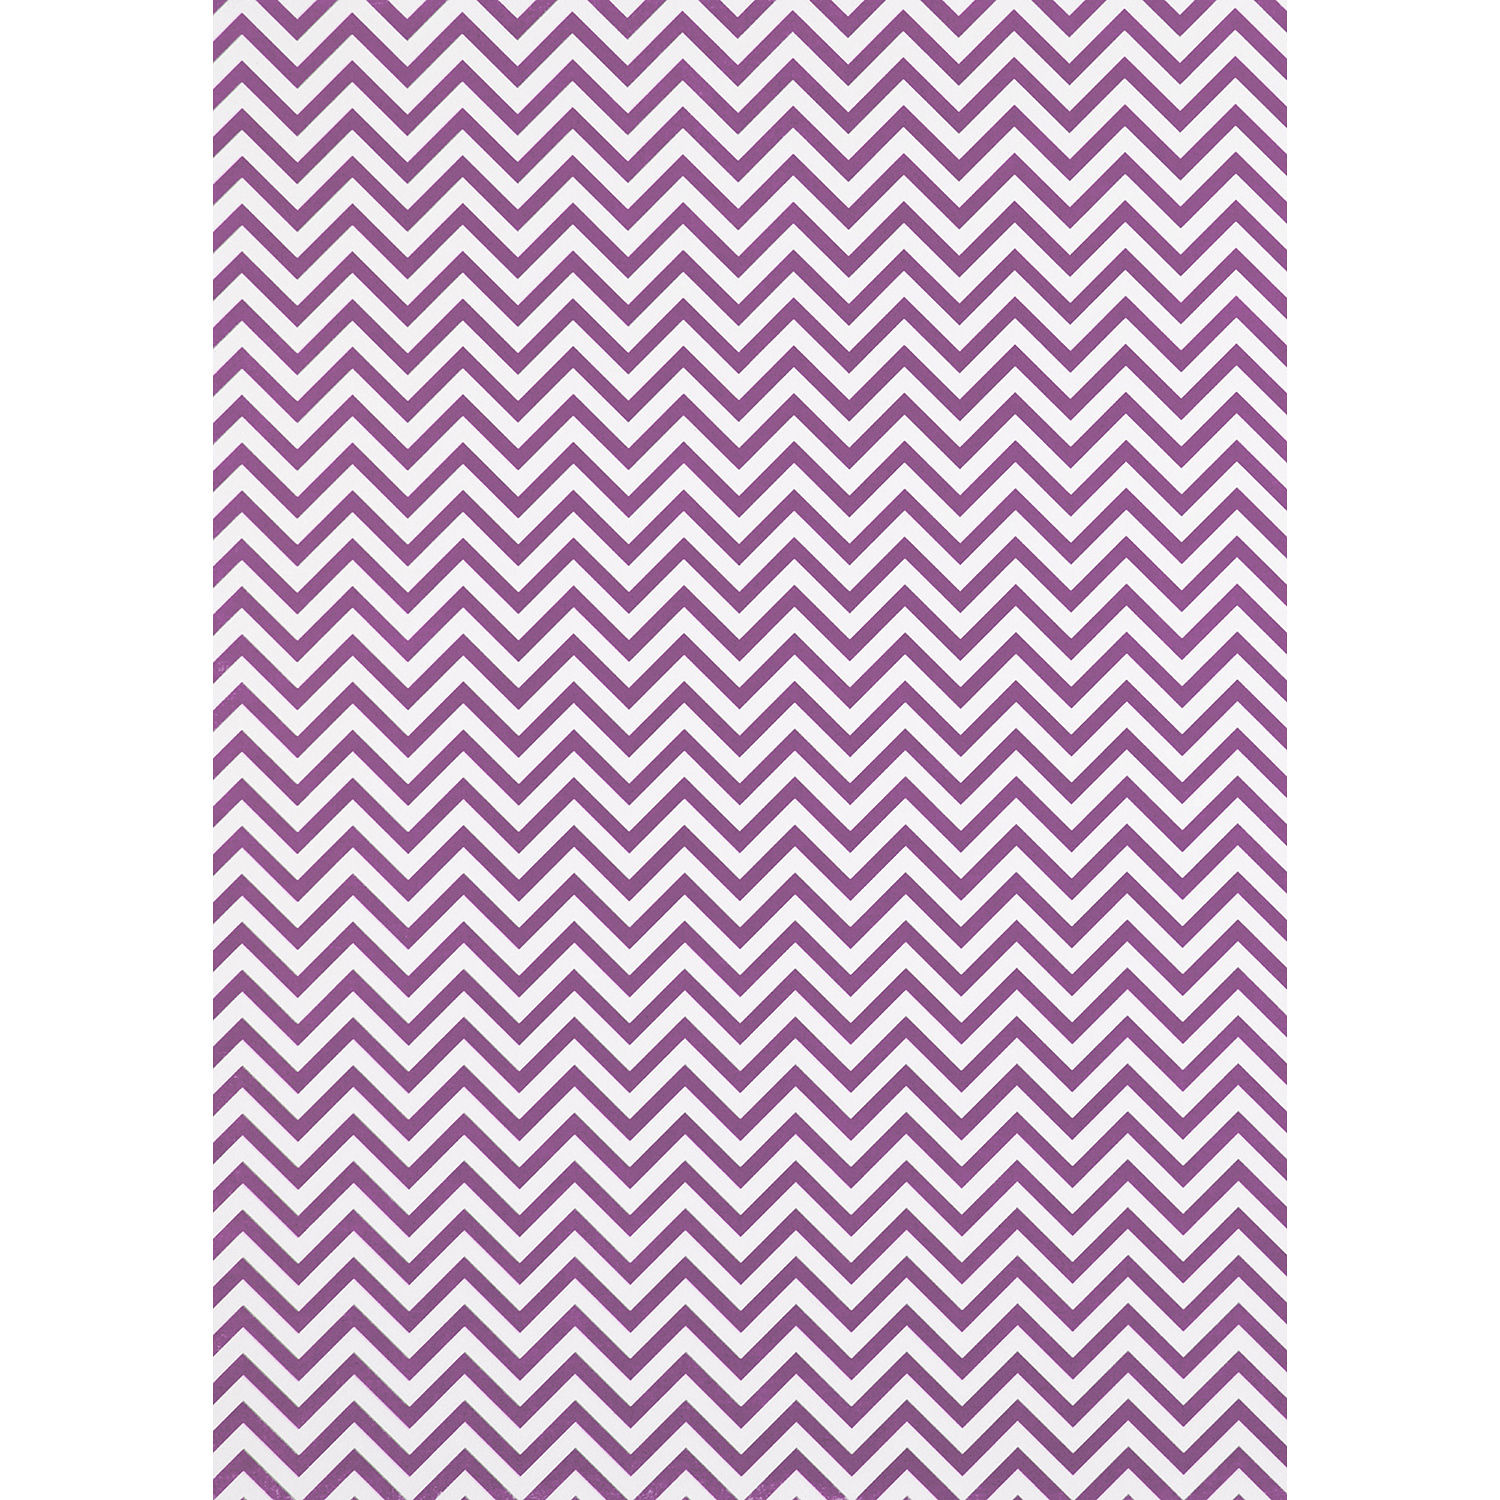 westcott narrow chevron art canvas backdrop d0020